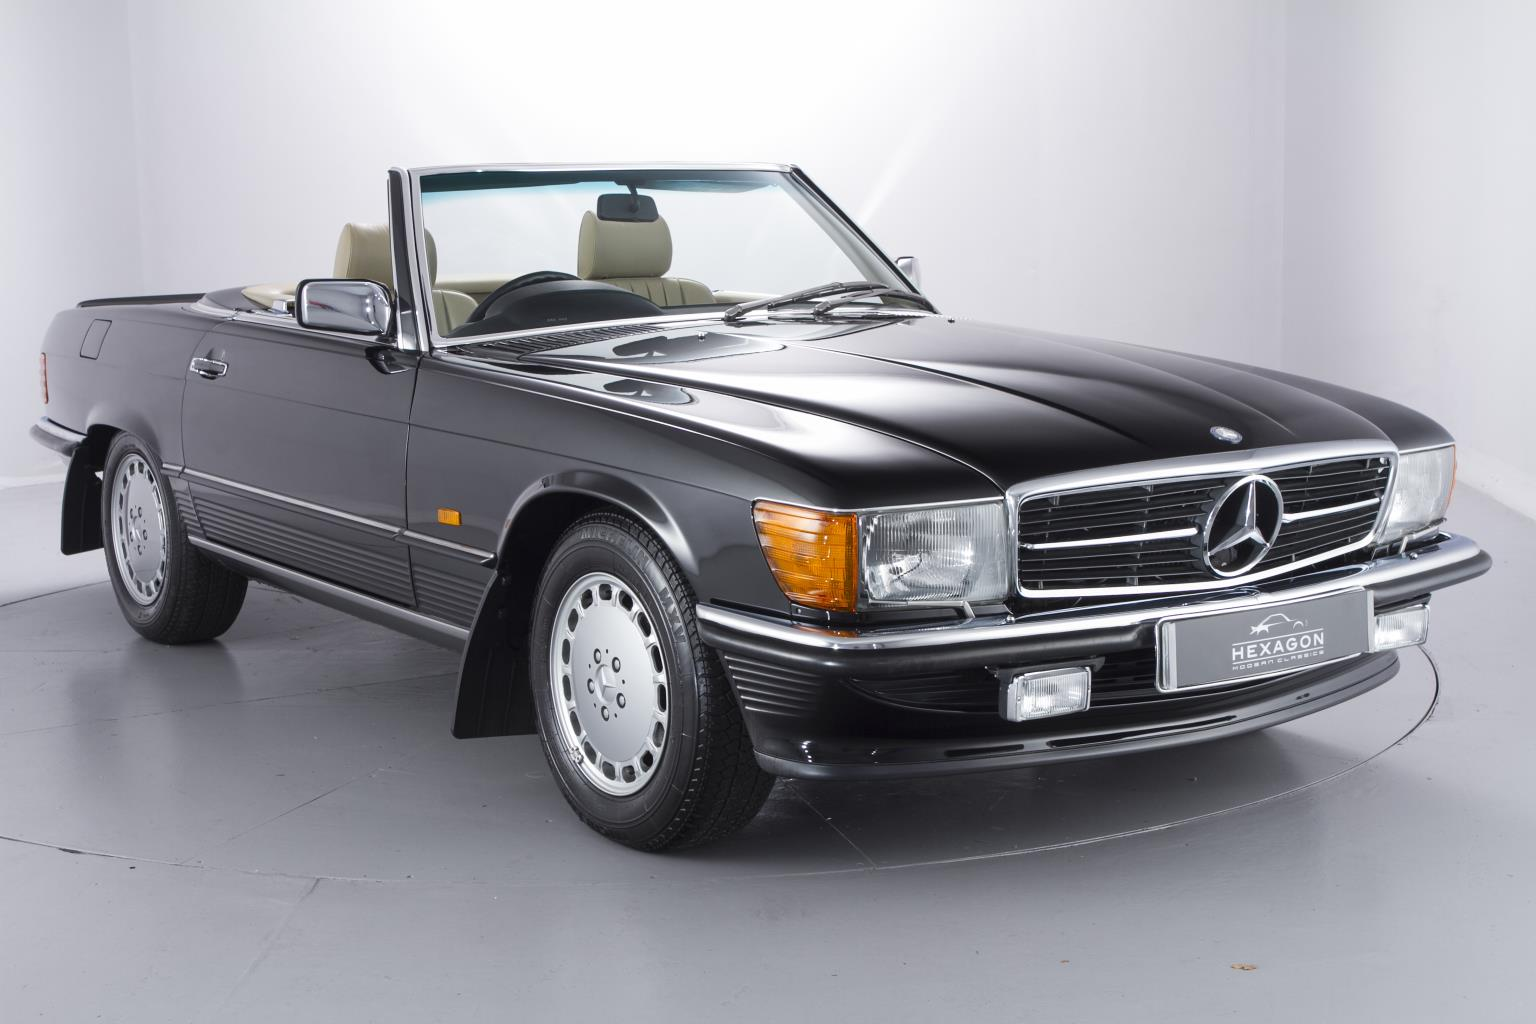 1989 mercedes benz 500 sl with 965 miles on the clock is. Black Bedroom Furniture Sets. Home Design Ideas